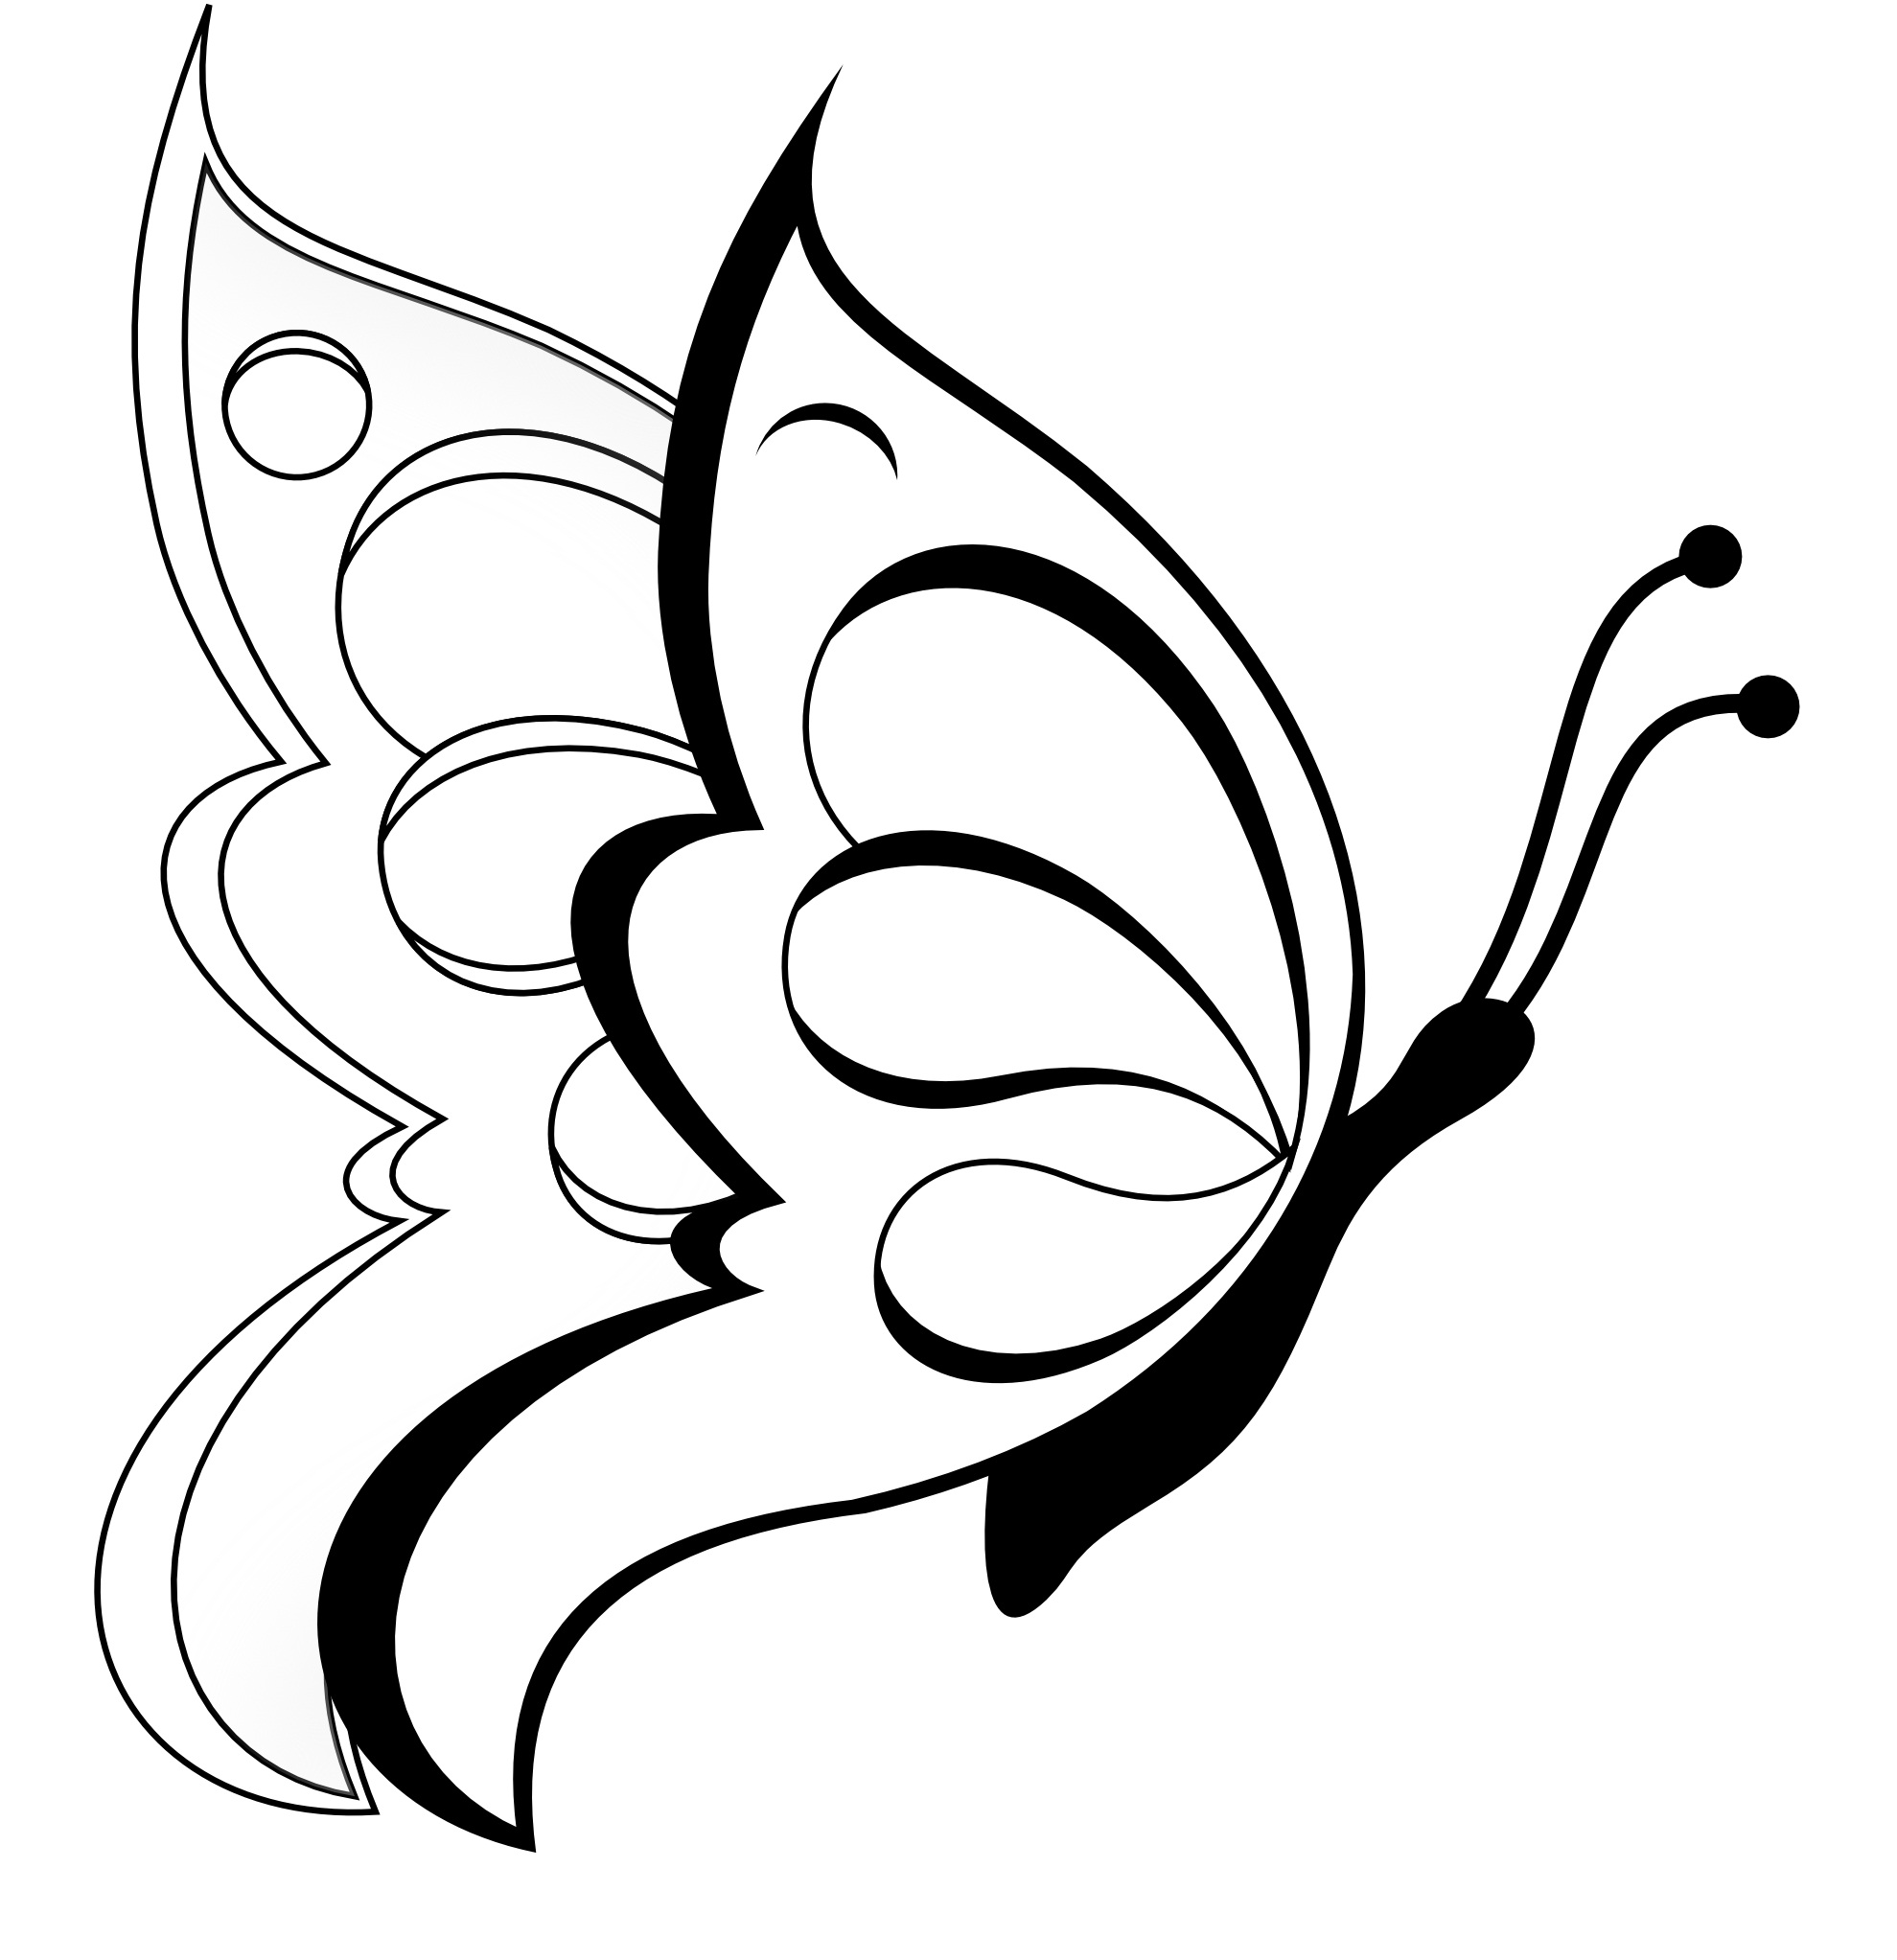 kids butterfly coloring pages - Free Easy Coloring Pages